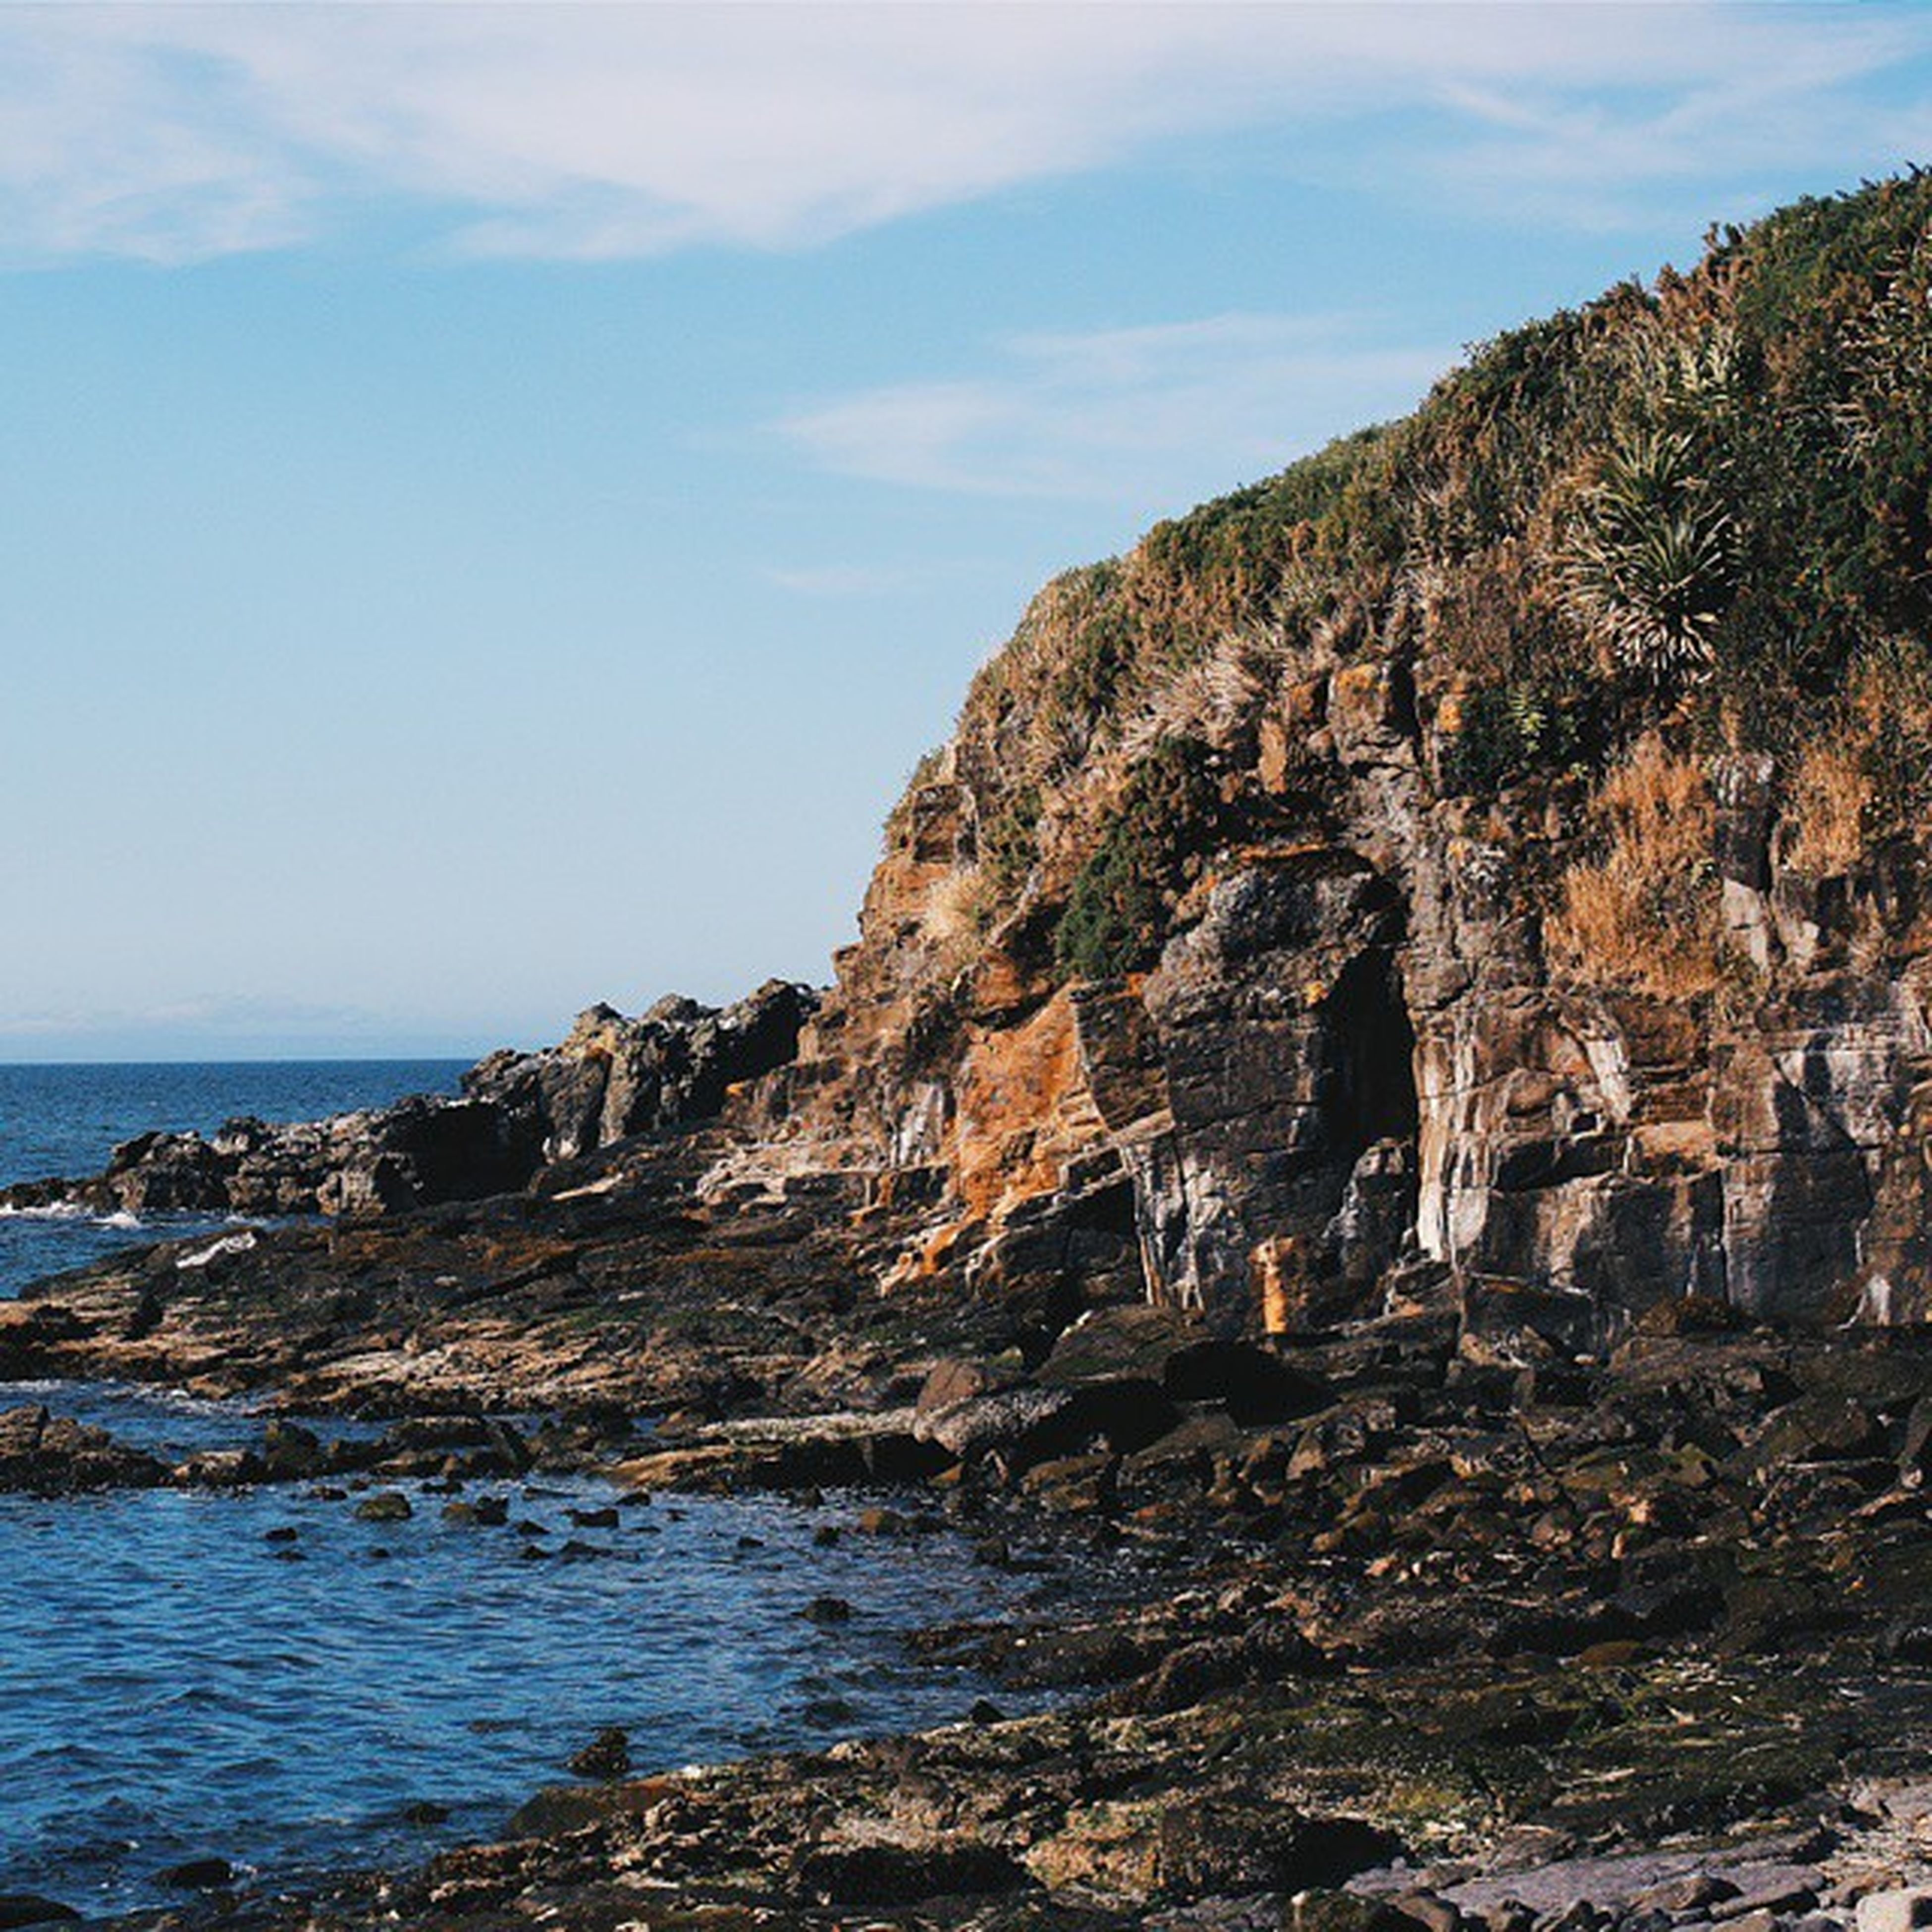 sea, rock formation, water, horizon over water, rock - object, scenics, tranquility, tranquil scene, sky, beauty in nature, cliff, beach, nature, shore, rock, idyllic, coastline, remote, day, geology